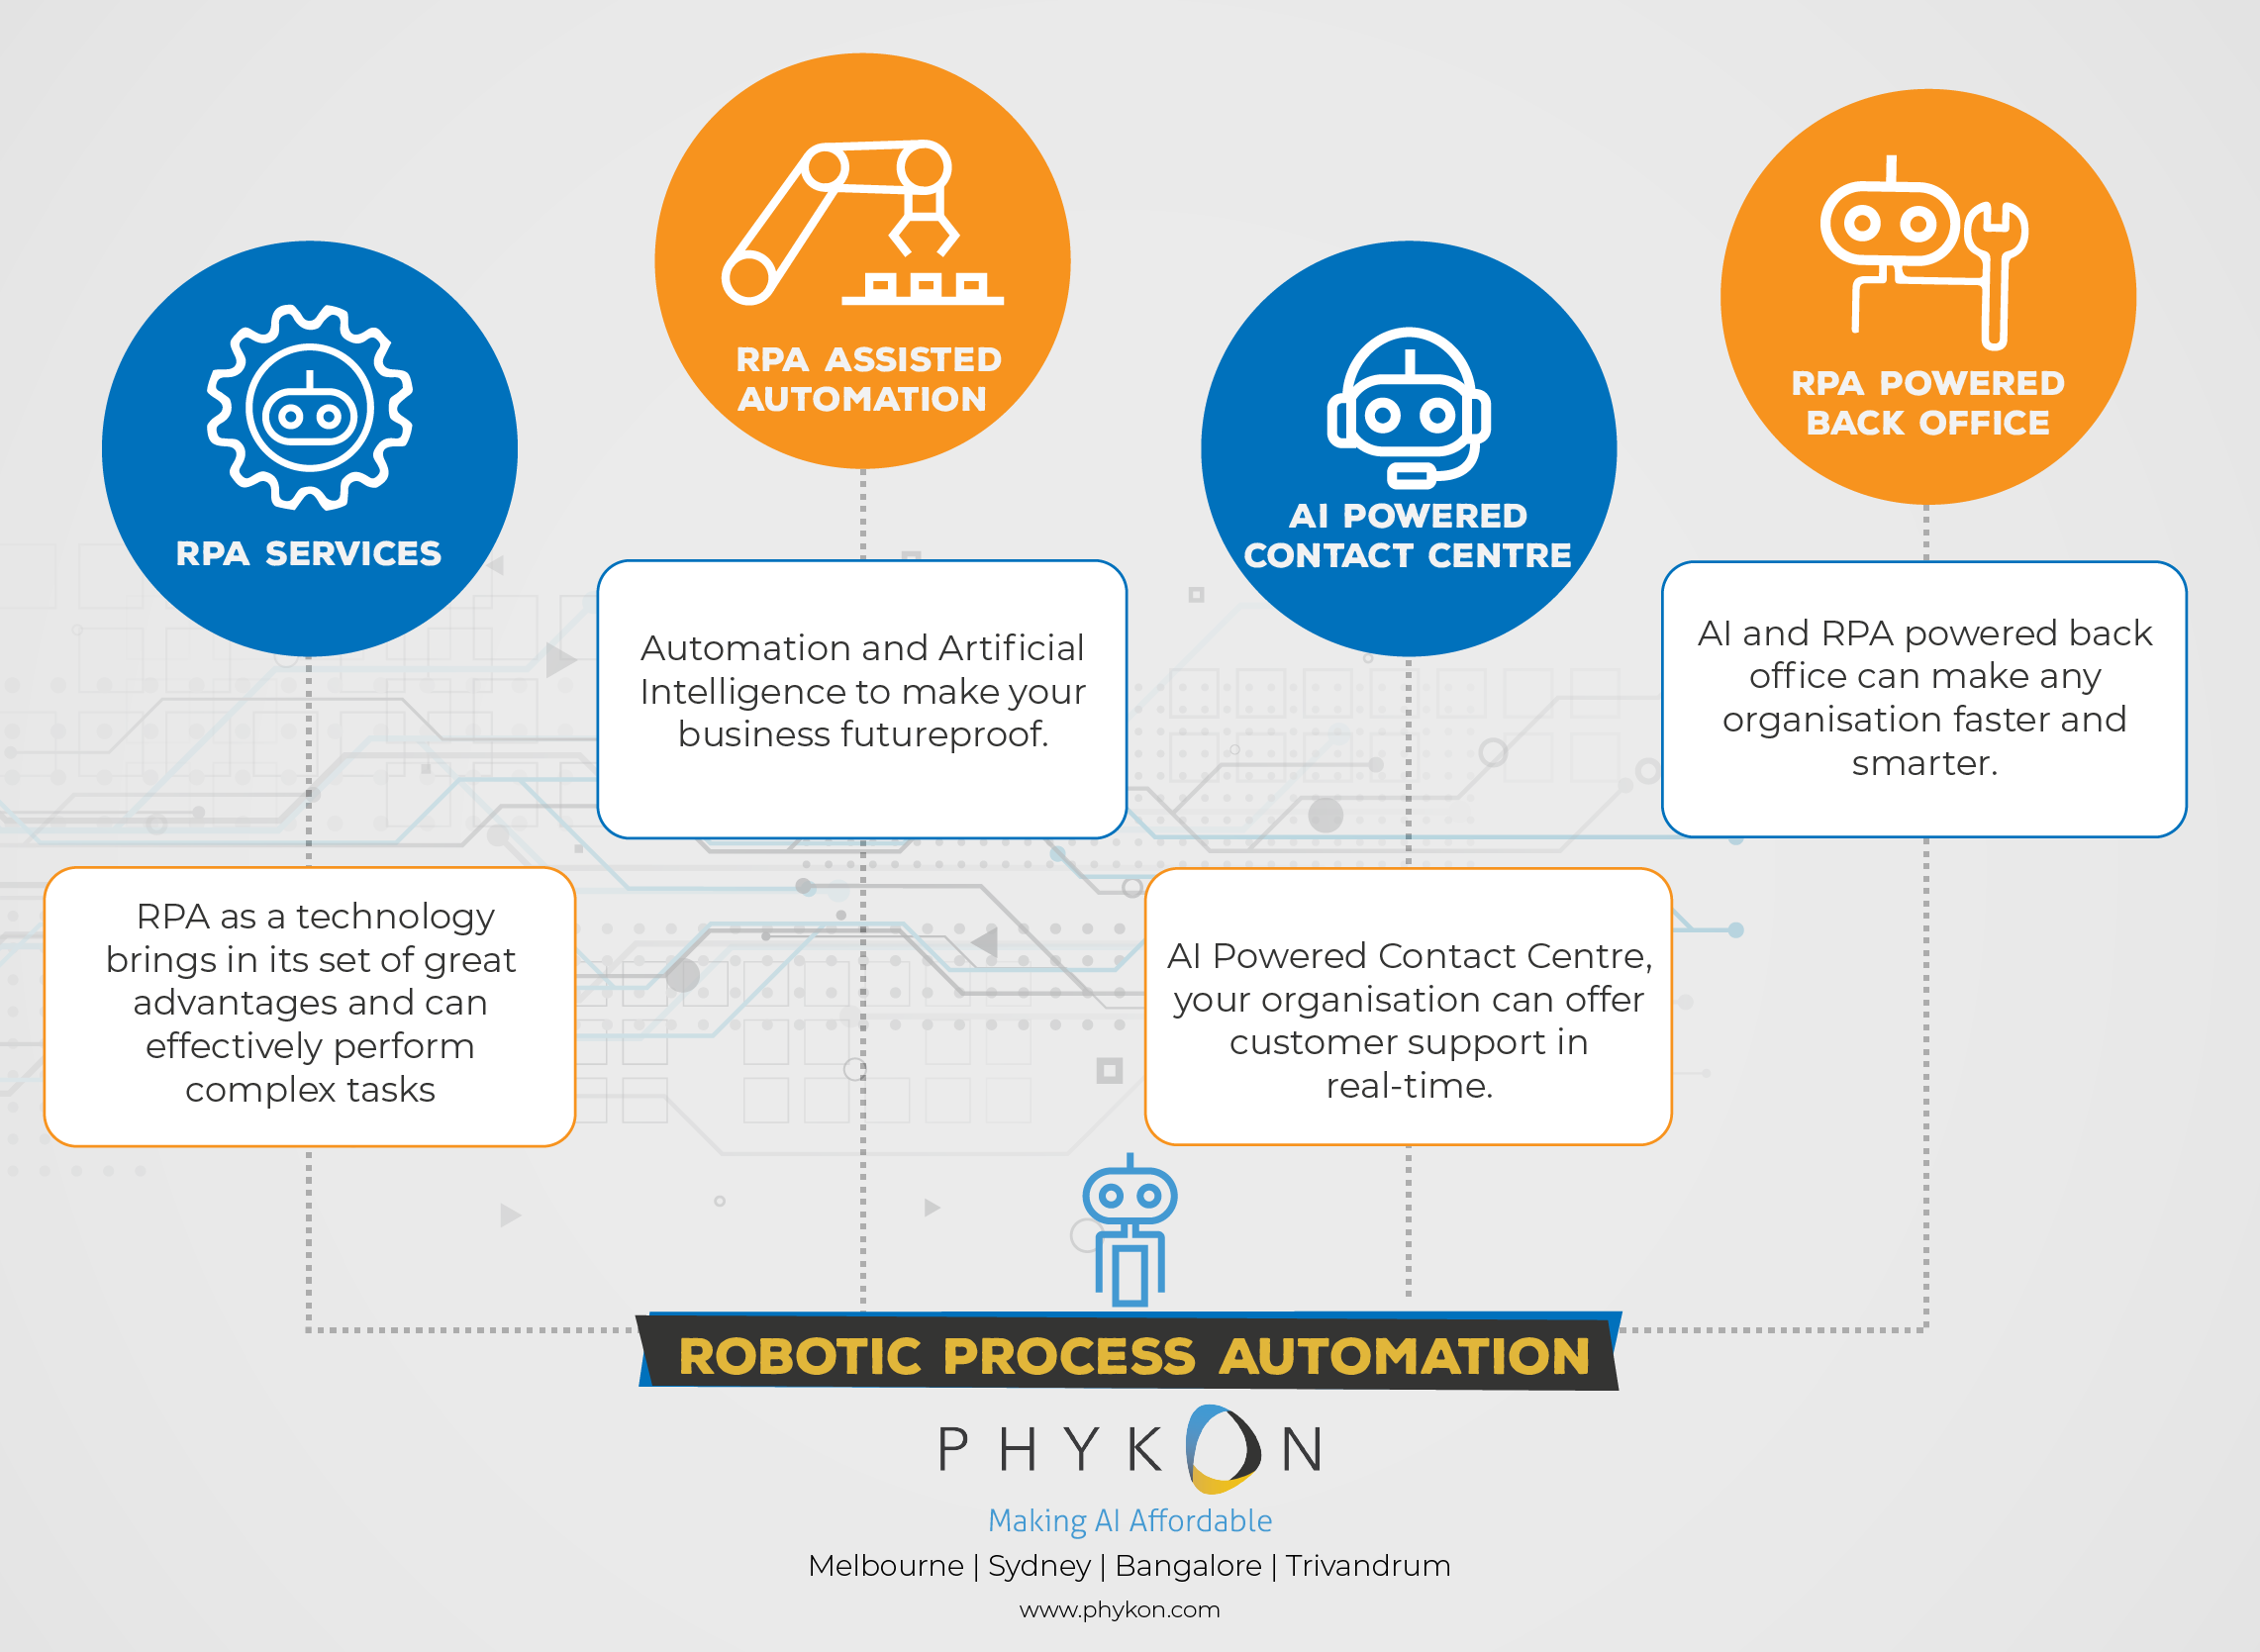 Phykon creates sophisticated solutions powered by Robotic